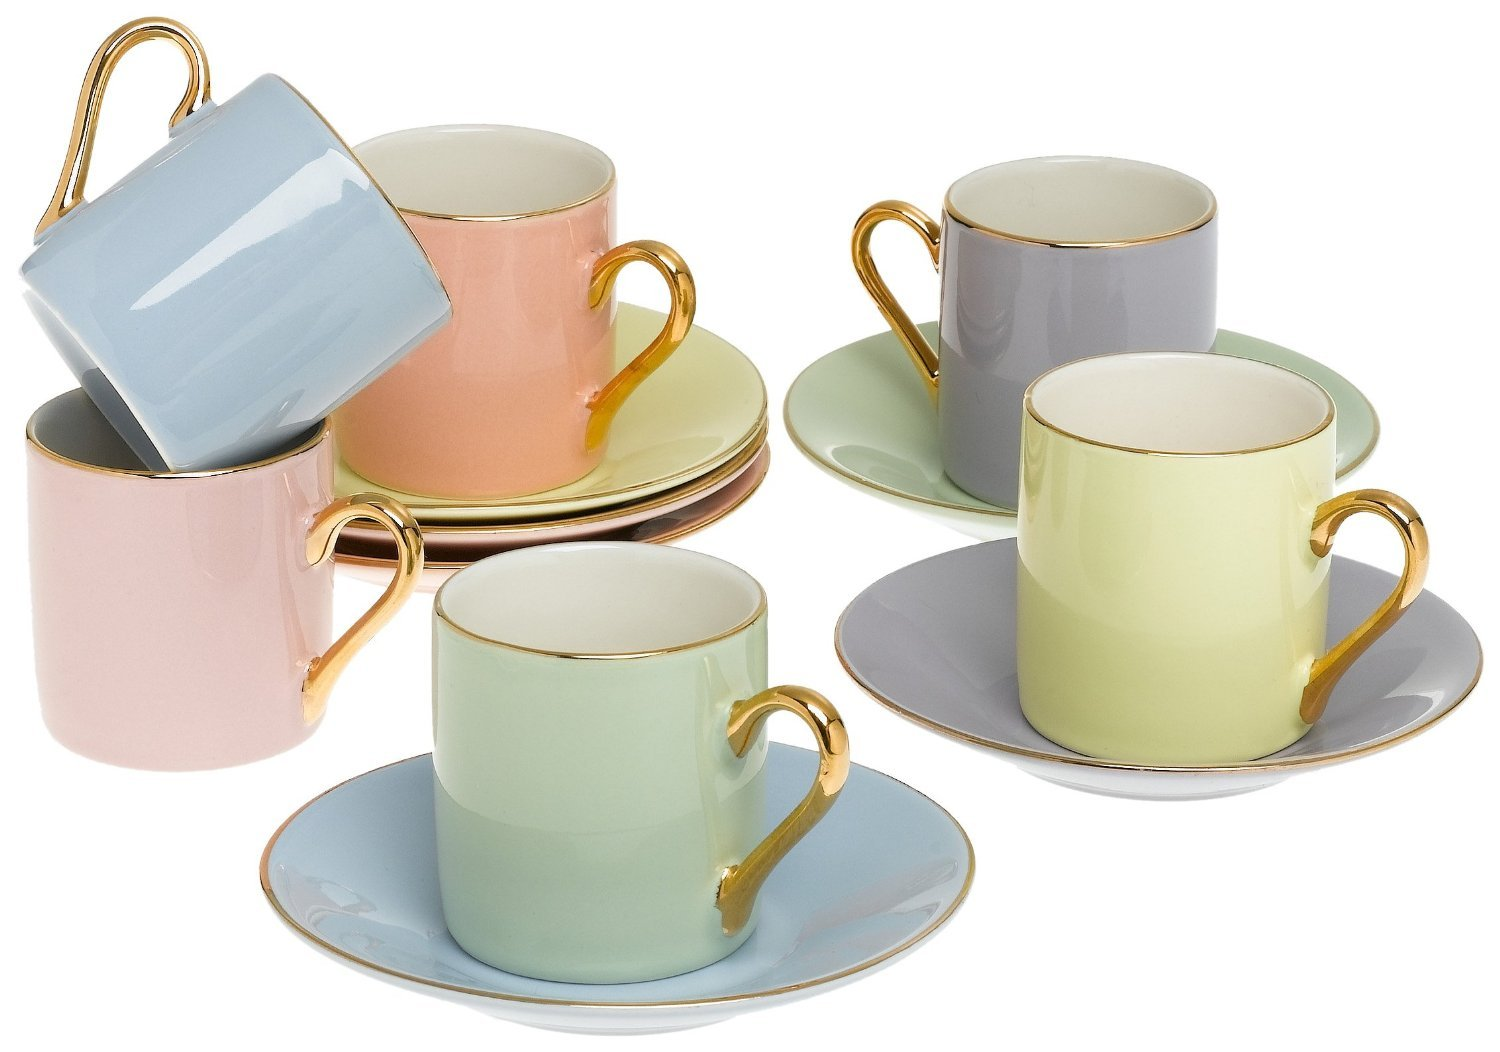 Classic Espresso Coffee Cups & Saucers (Set of 6) by Yedi Houseware Premium Porcelain In Stylish, Pastel Colors with Gold Plated Rims & Handles for an Authentic, Italian Café Feel 2 ½ oz